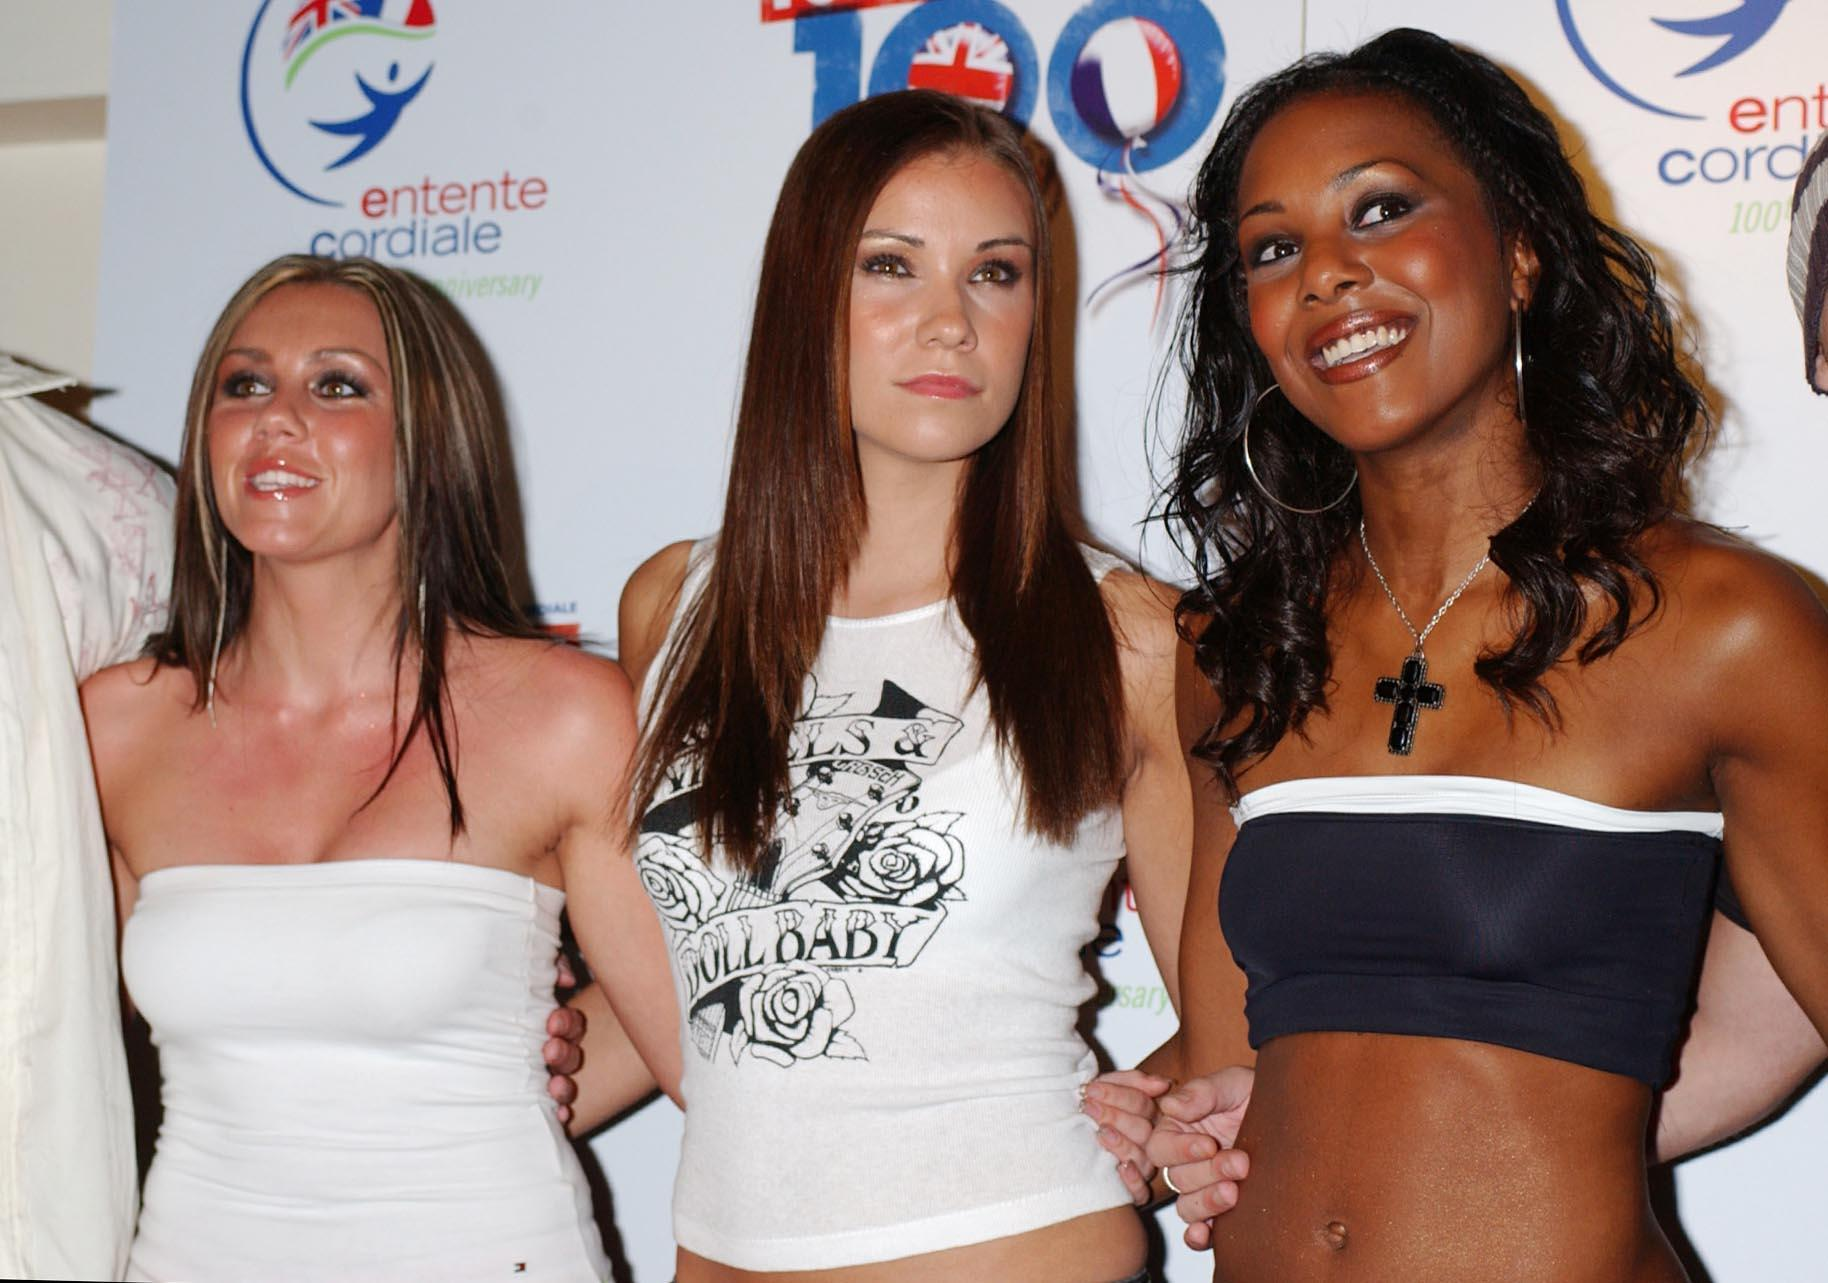 Singers Michelle Heaton, Jessica Taylor, and Kelli Young, from band Liberty X in 2004. (Andy Butterton/PA)